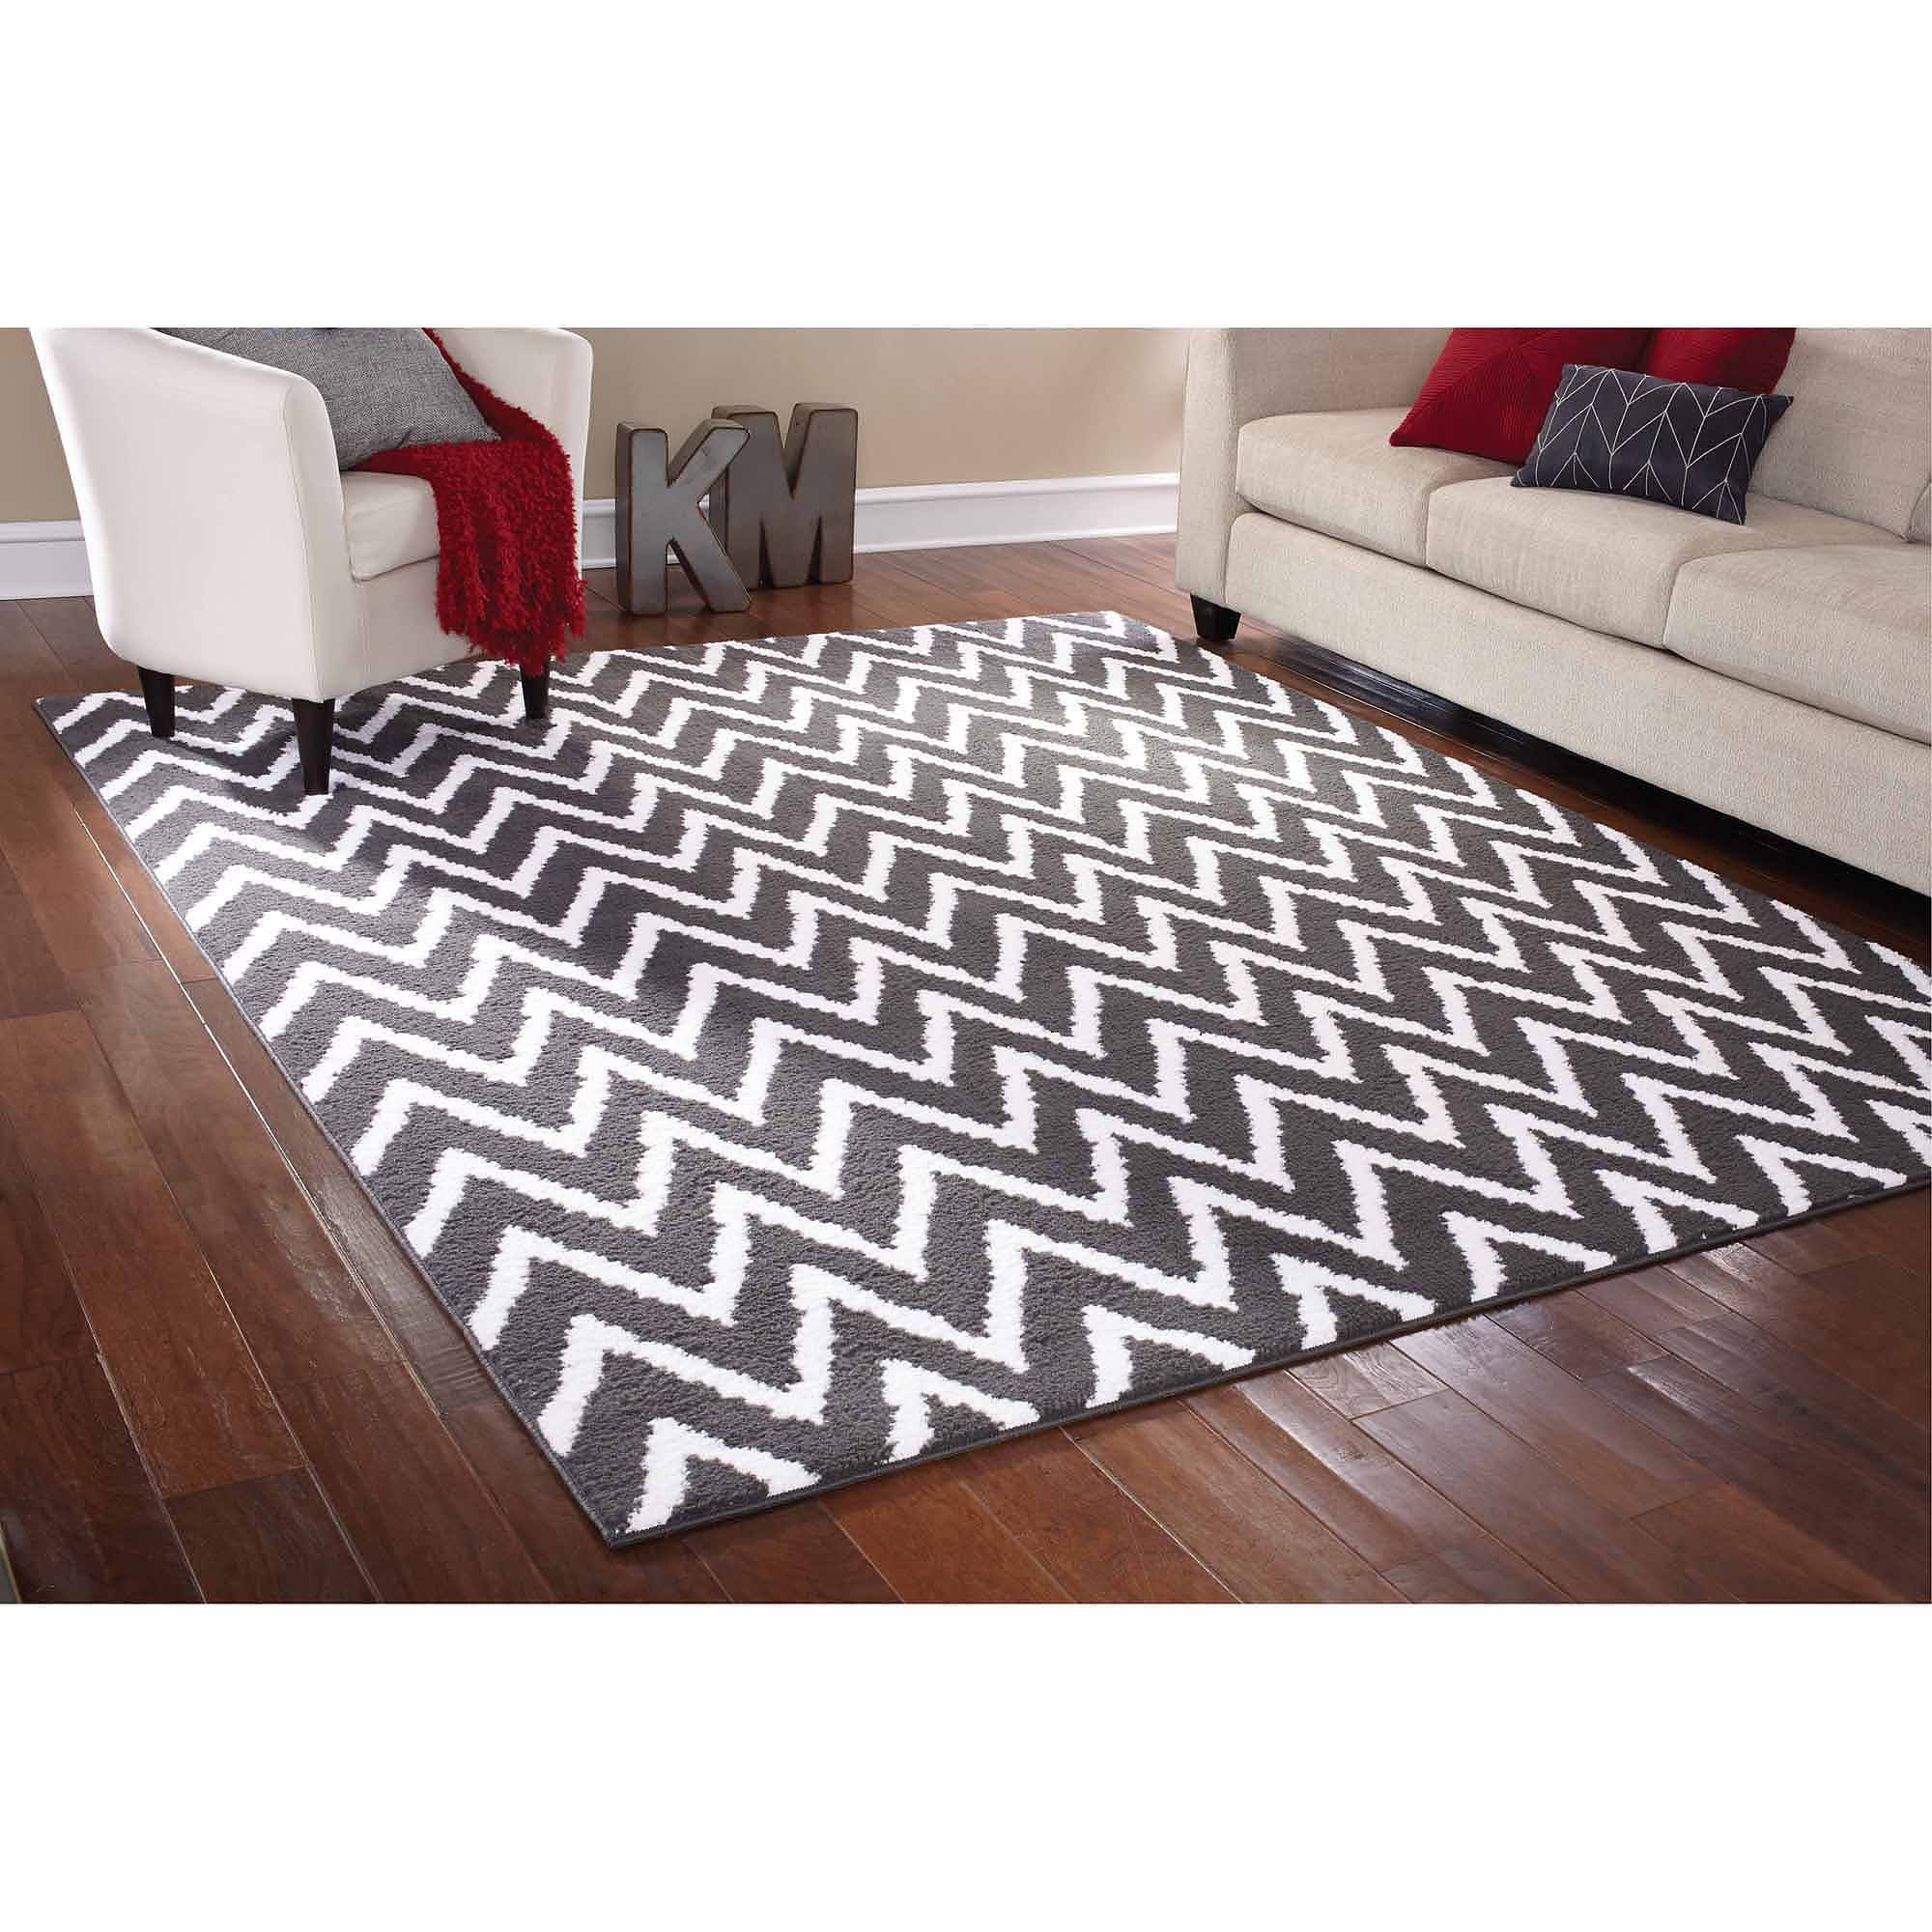 Mainstays Rug In A Bag Distressed Zig Zag Cinder Area Rug, Gray/White    Walmart.com